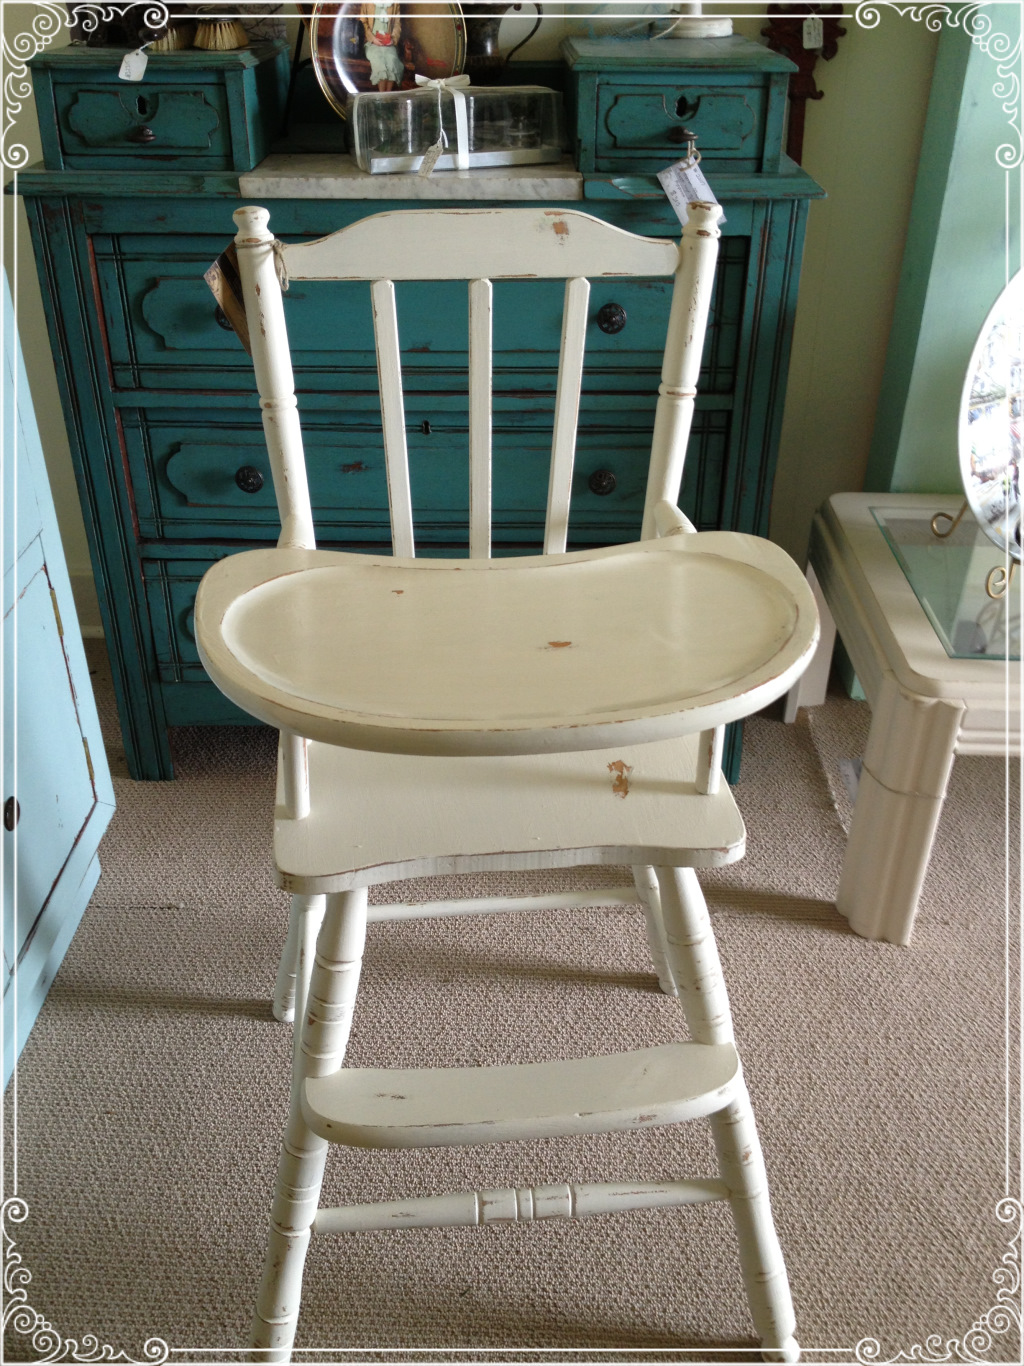 high chair pic 1 - Vintage Wooden Baby High Chair Ginger's Attic